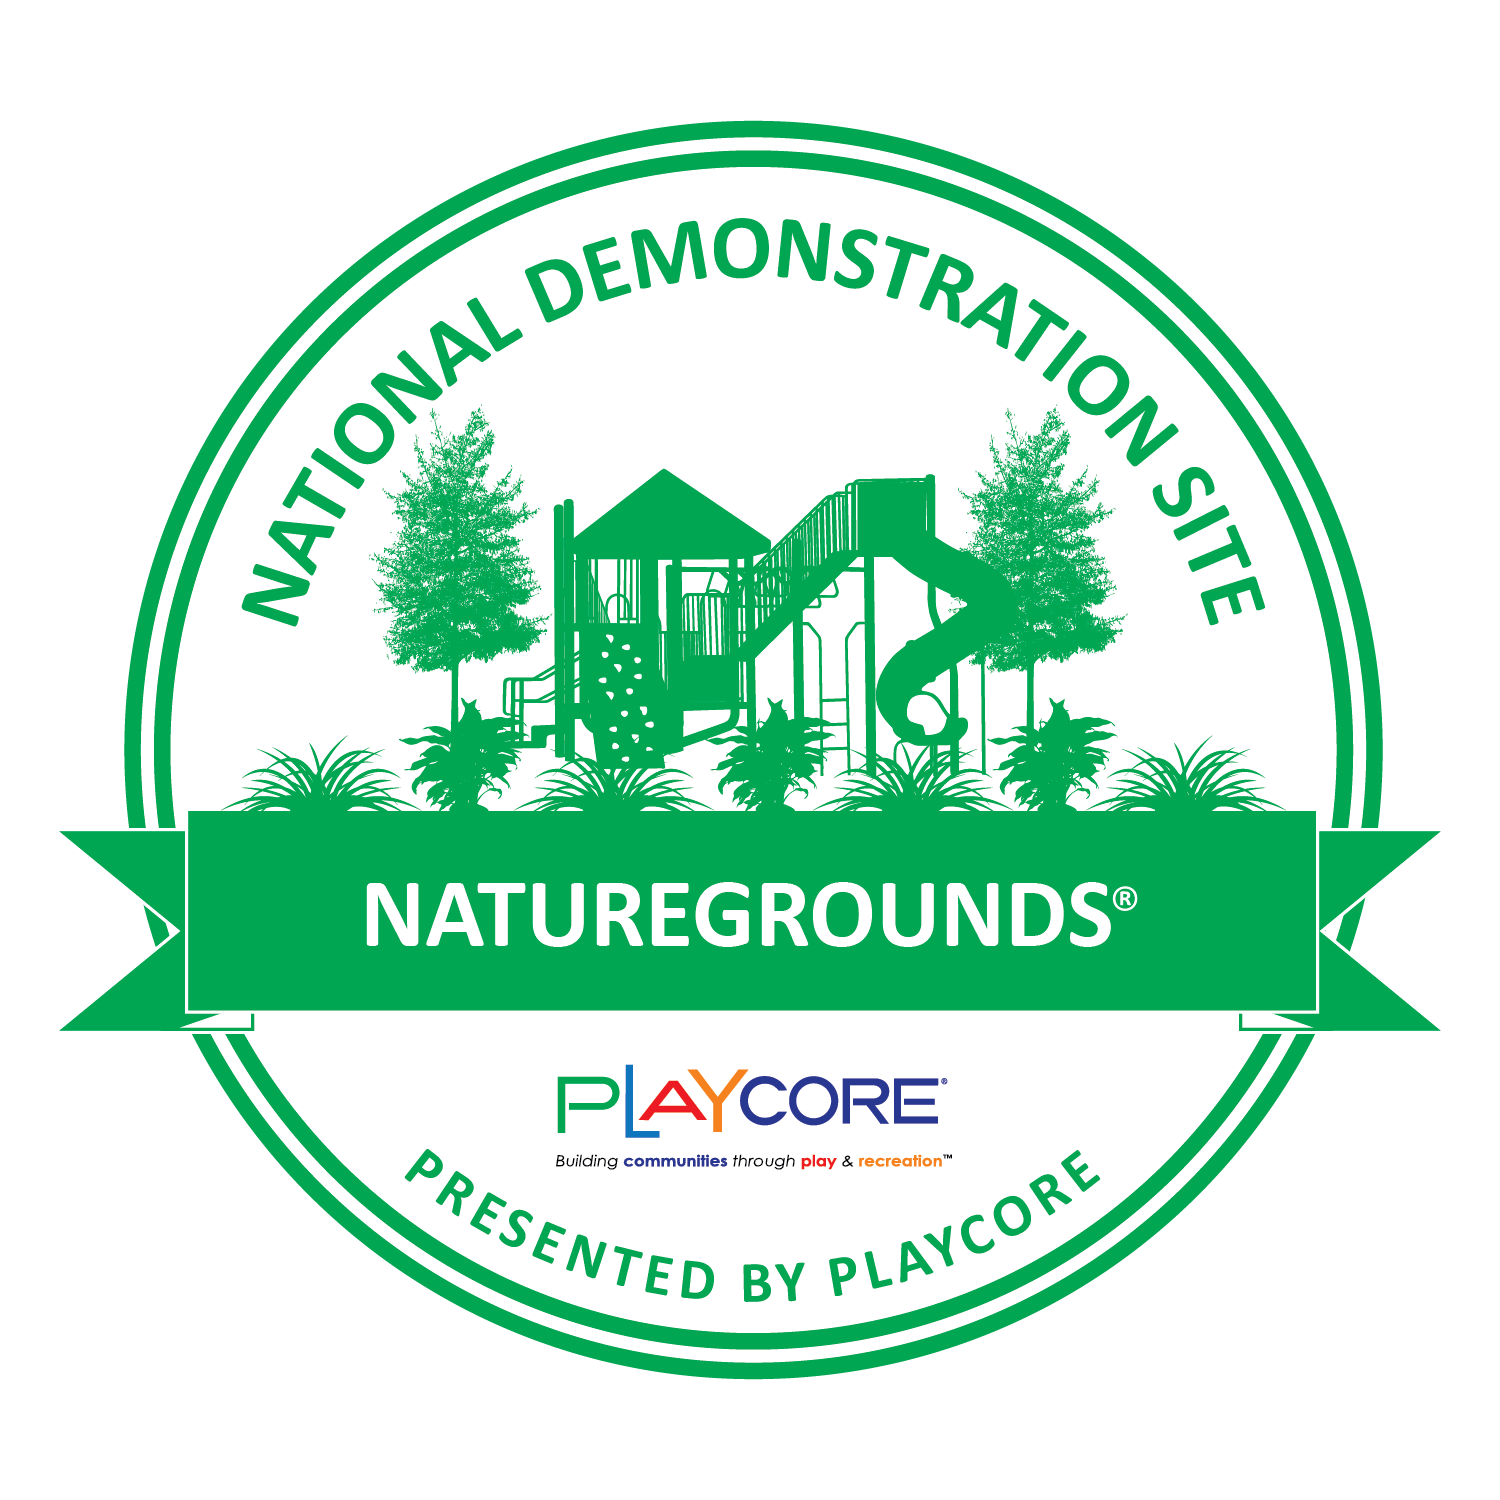 National Demonstration Site Seal - NatureGrounds